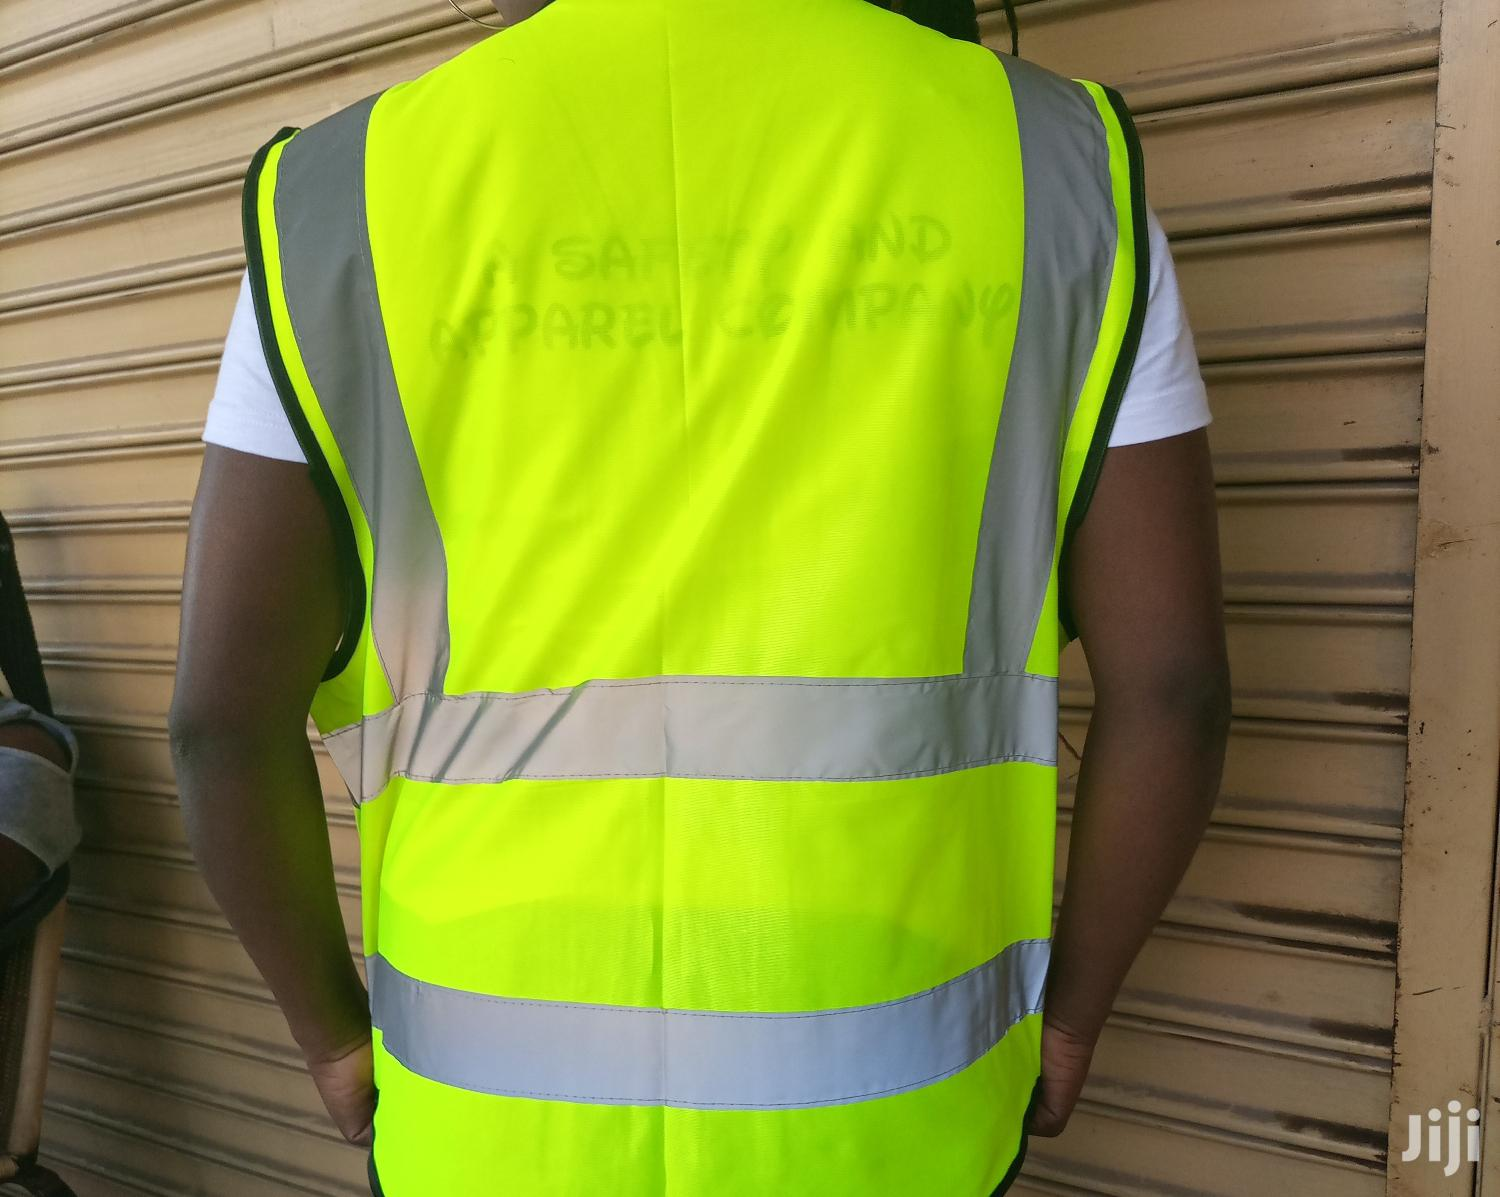 Four Strip Green and Orange Reflectors Available   Safetywear & Equipment for sale in Ngara, Nairobi, Kenya